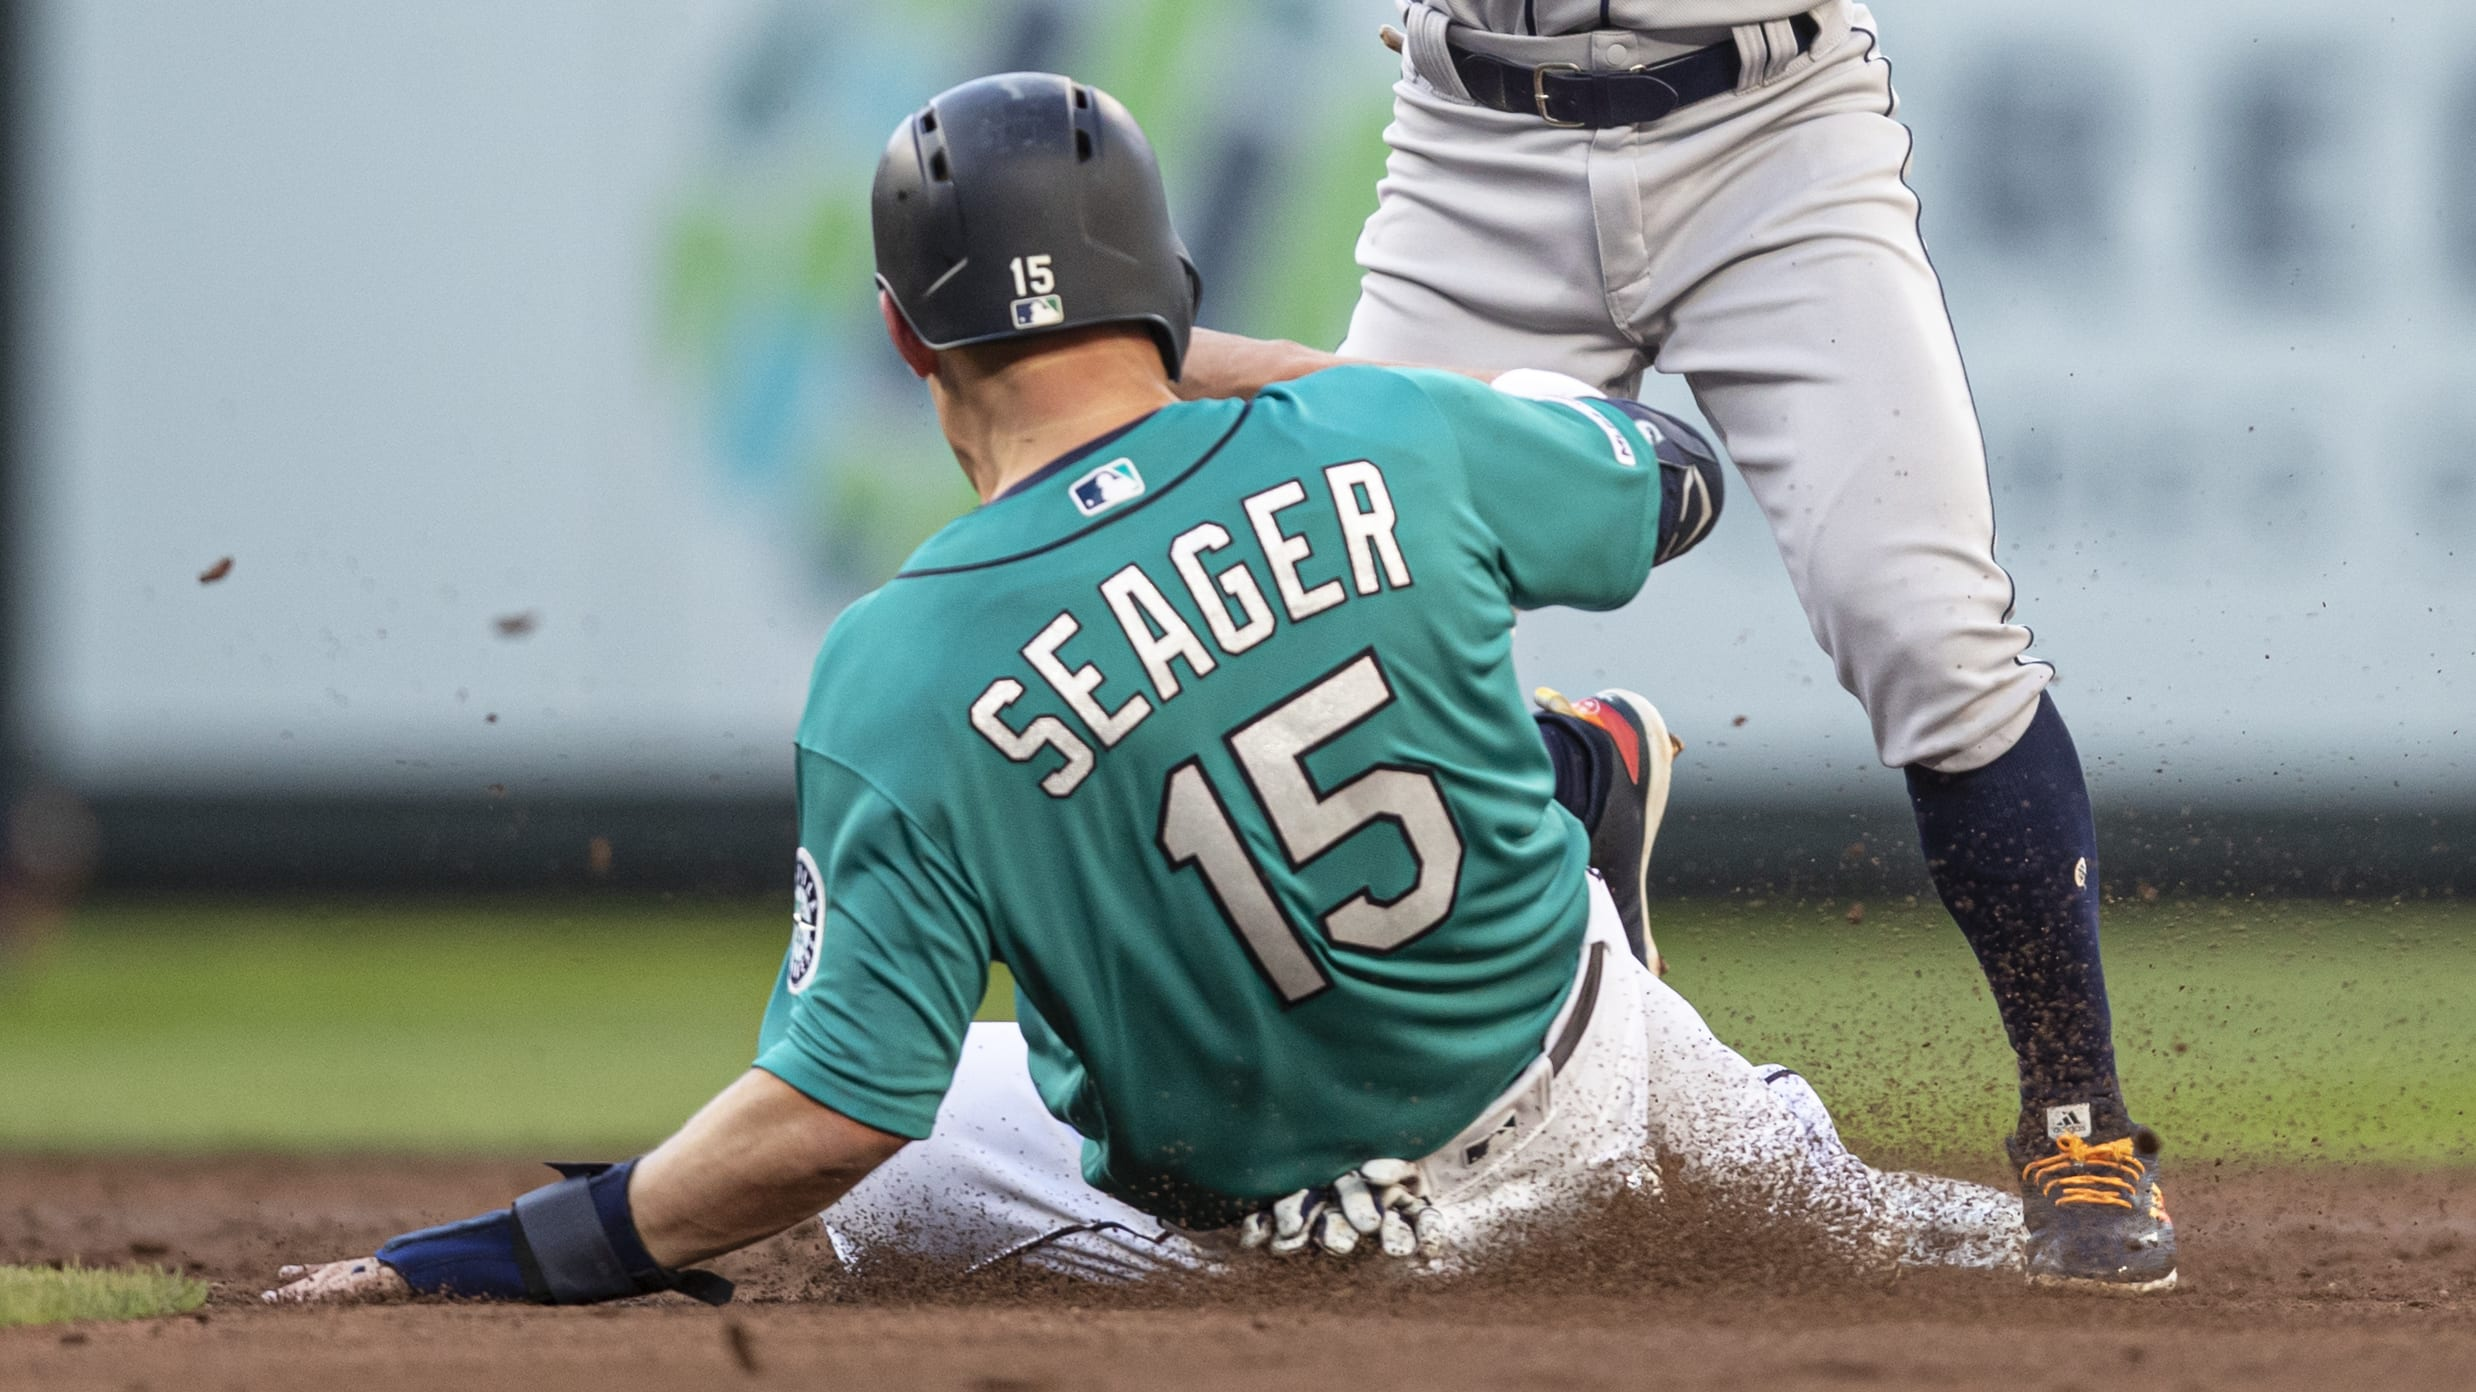 SEATTLE, WA - JUNE 5: Second baseman Tony Kemp #18 of the Houston Astros turns a double play after forcing out Kyle Seager #15 of the Seattle Mariners at second base on a ball hit by Domingo Santana #16 of the Seattle Mariners during the second inning of a game at T-Mobile Park on June 5, 2019 in Seattle, Washington. (Photo by Stephen Brashear/Getty Images)